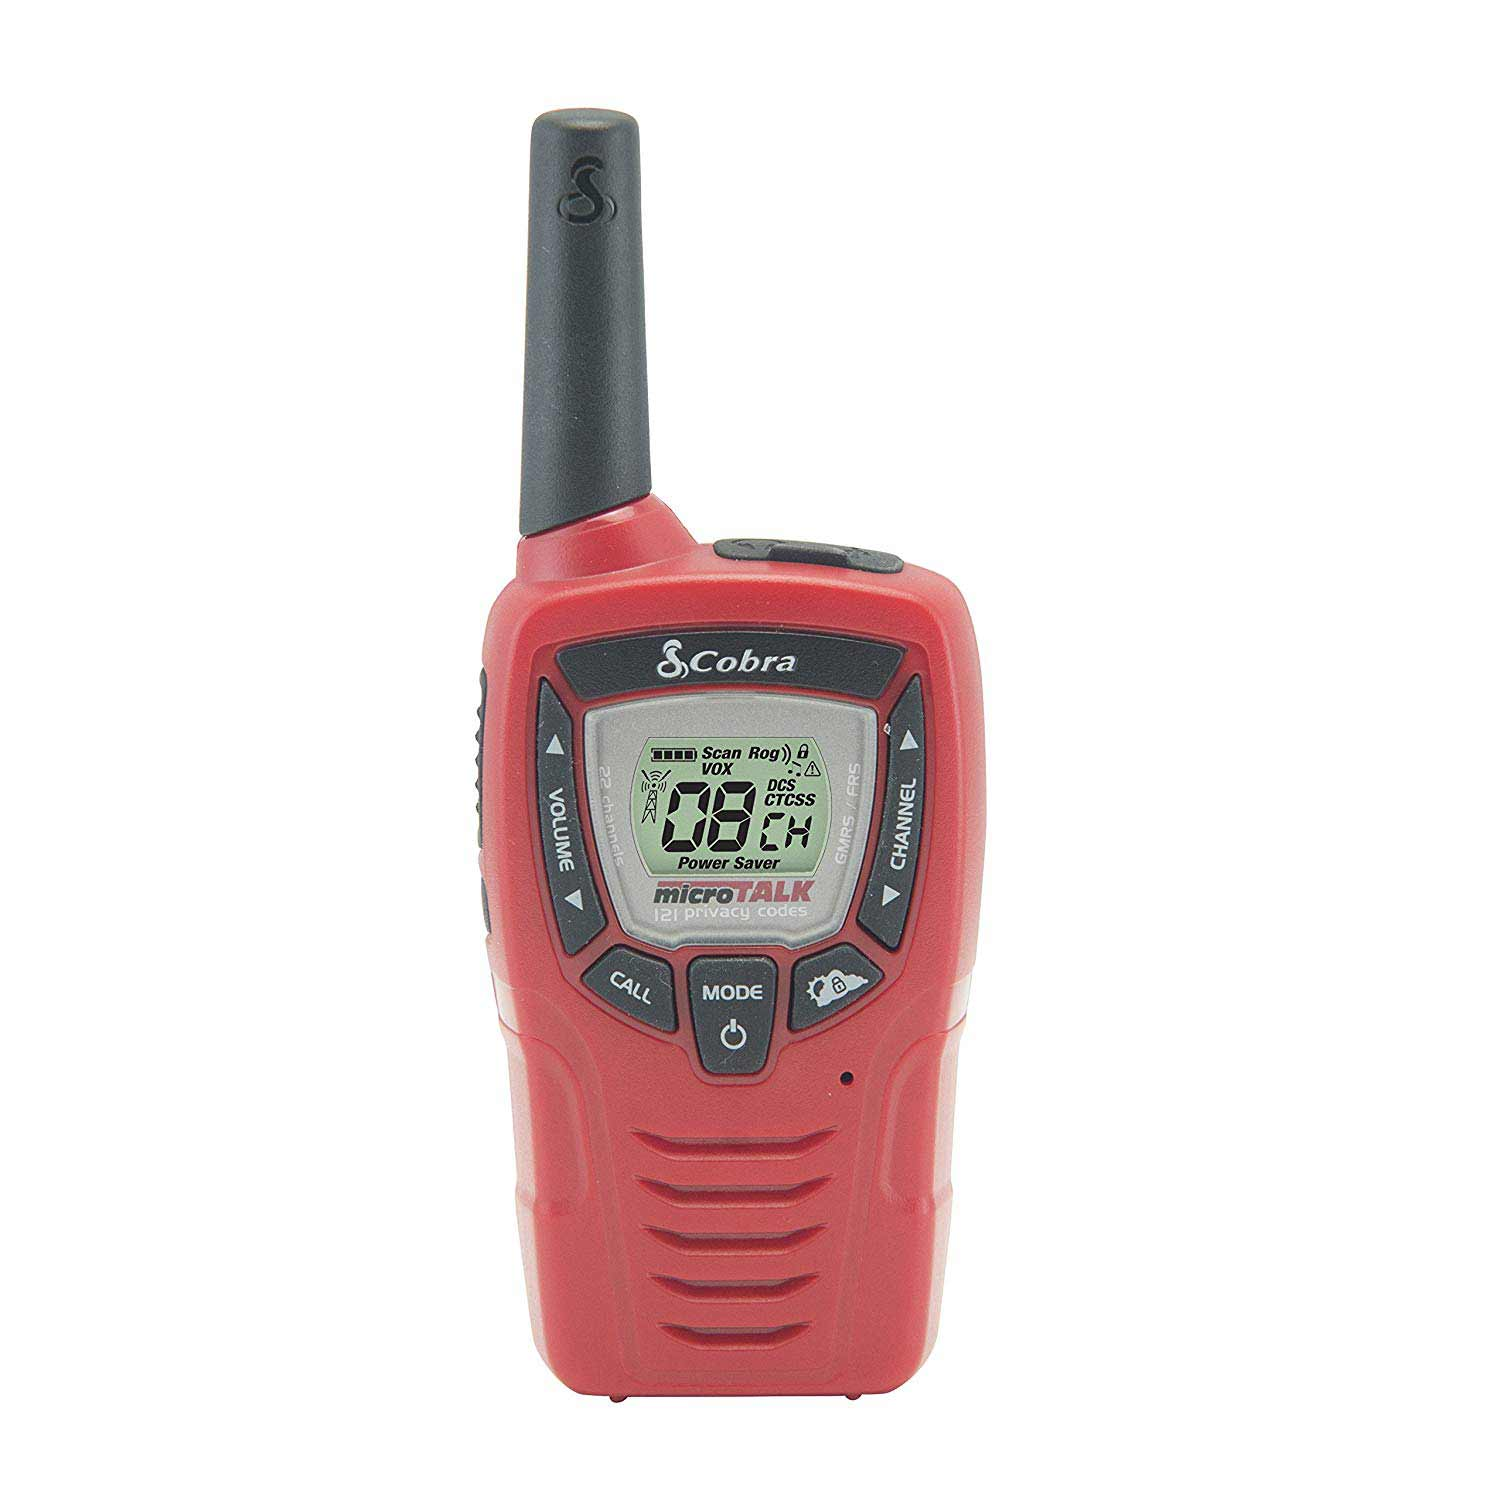 Cobra WR380 Emergency Weather Alert Radio, Red